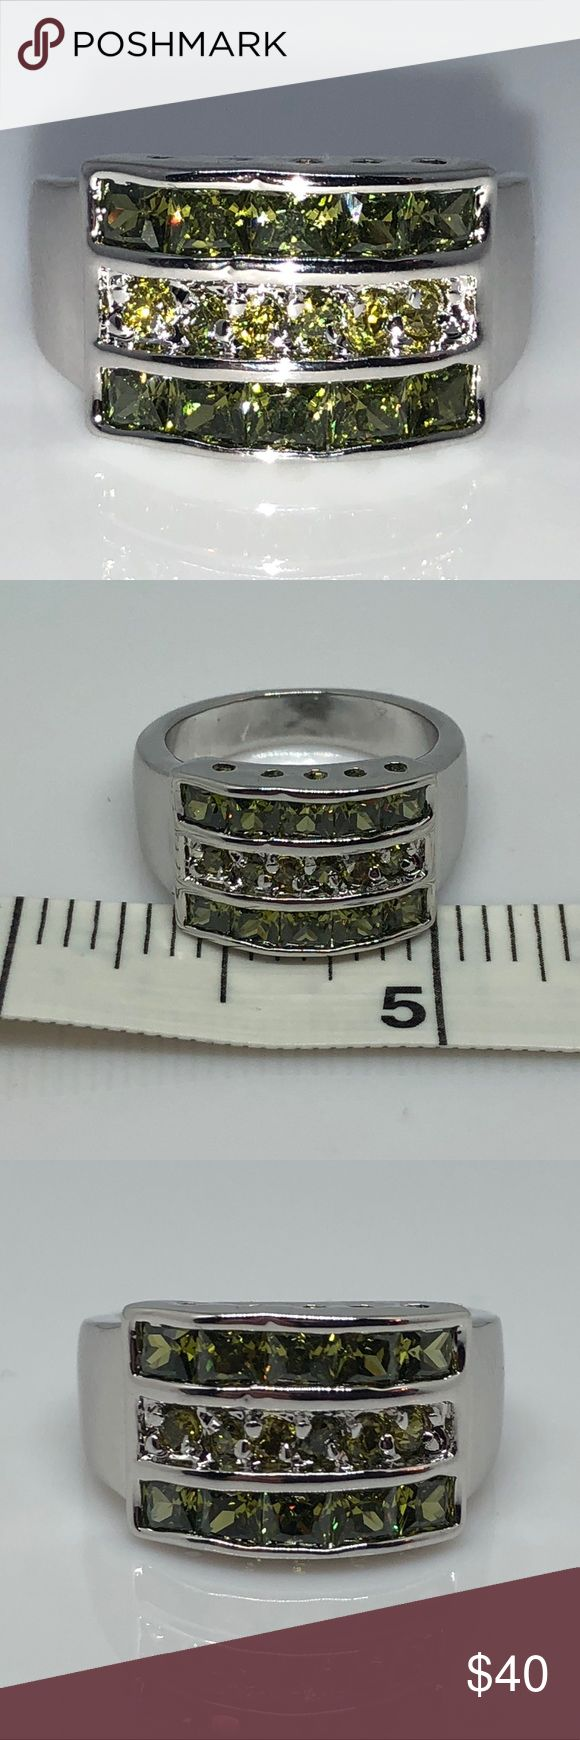 PP 925 Princess Cut Peridot Invisible Setting Sz7 Platinum Plated Stamped 925 Sterling Silver 10 Princess Cut Peridots in an Invisible Setting with 6 round peridots in the center Size 7 Jewelry Rings